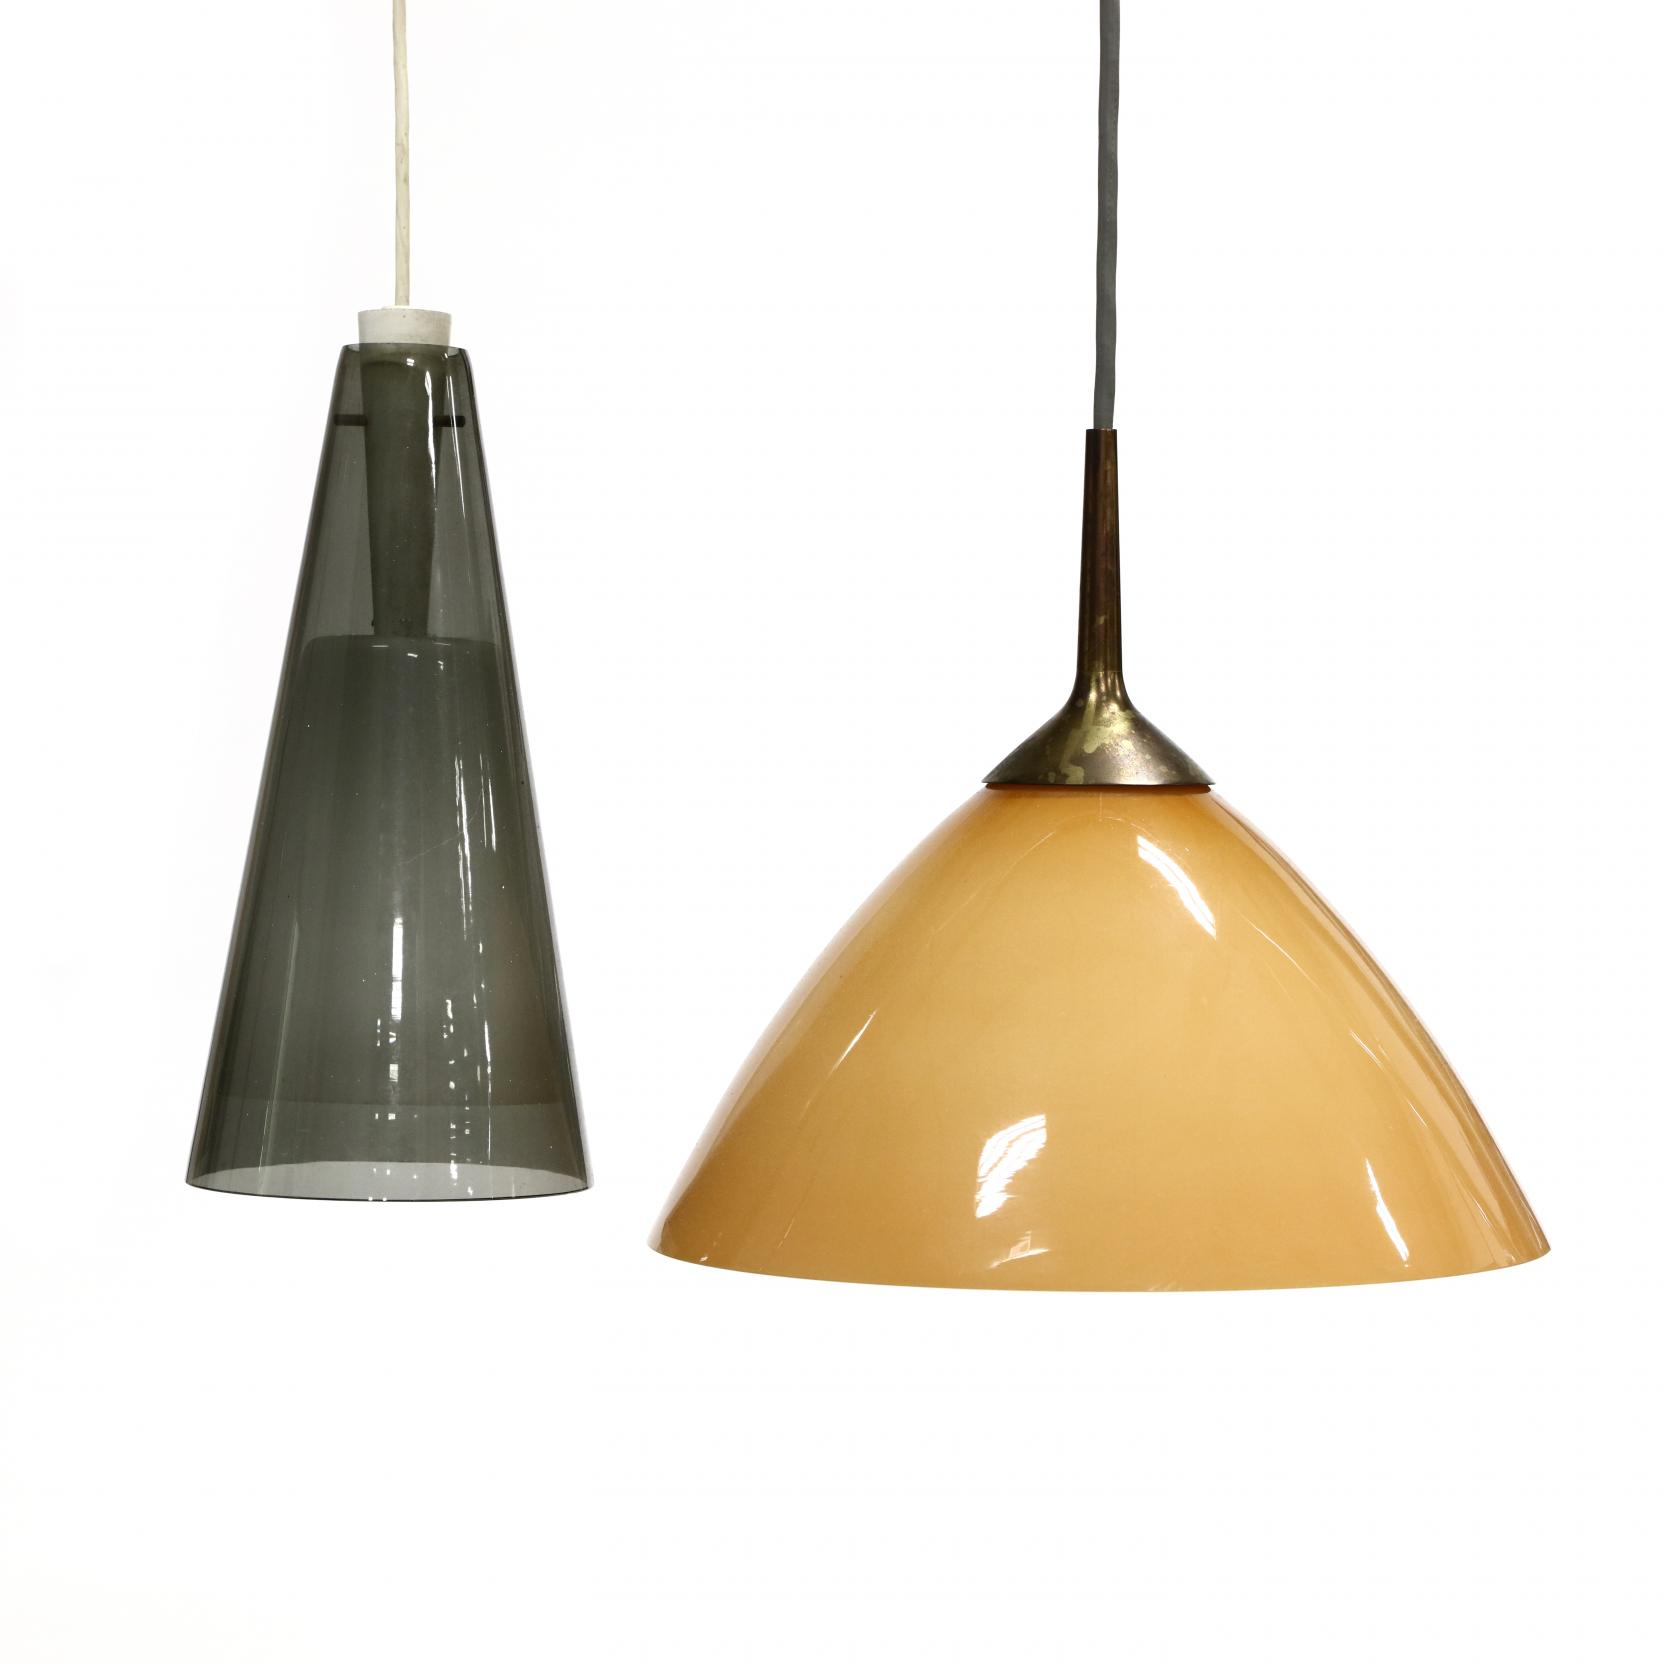 two-vintage-murano-pendant-lights